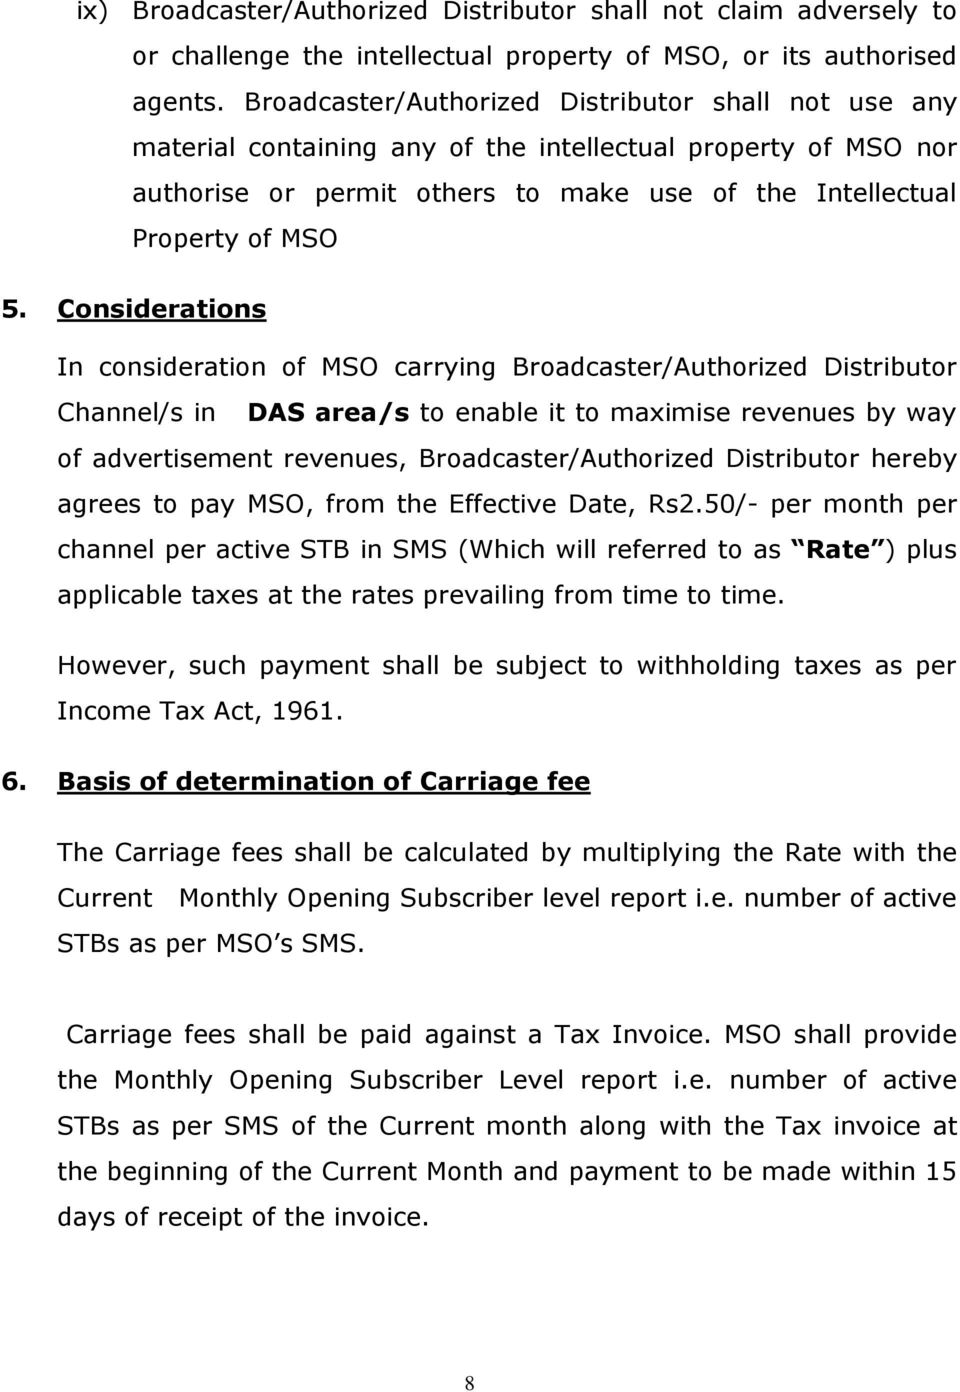 Considerations In consideration of MSO carrying Broadcaster/Authorized Distributor Channel/s in DAS area/s to enable it to maximise revenues by way of advertisement revenues, Broadcaster/Authorized